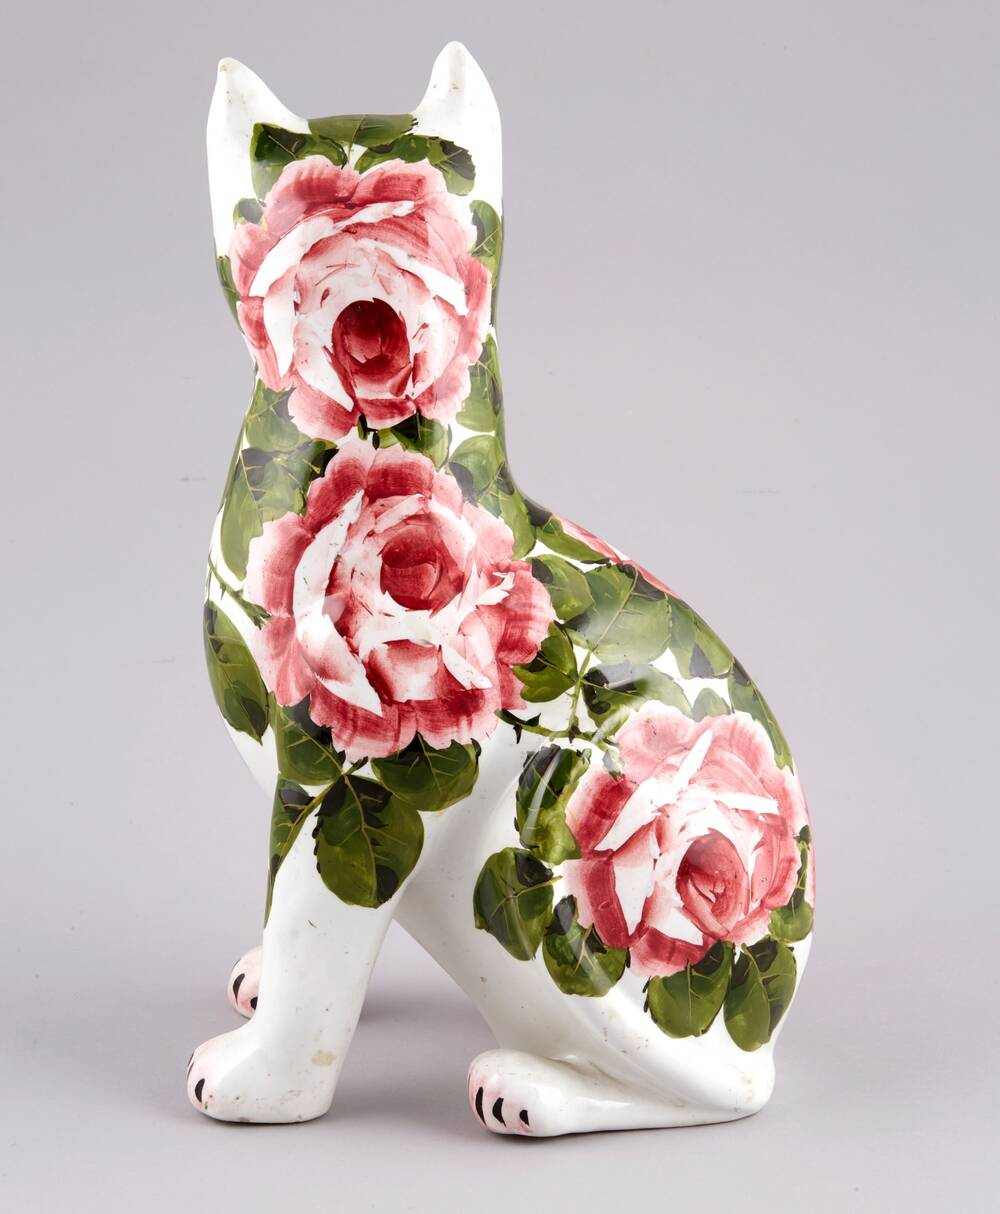 The back of a Wemyss Ware cat showing the famous cabbage rose decoration